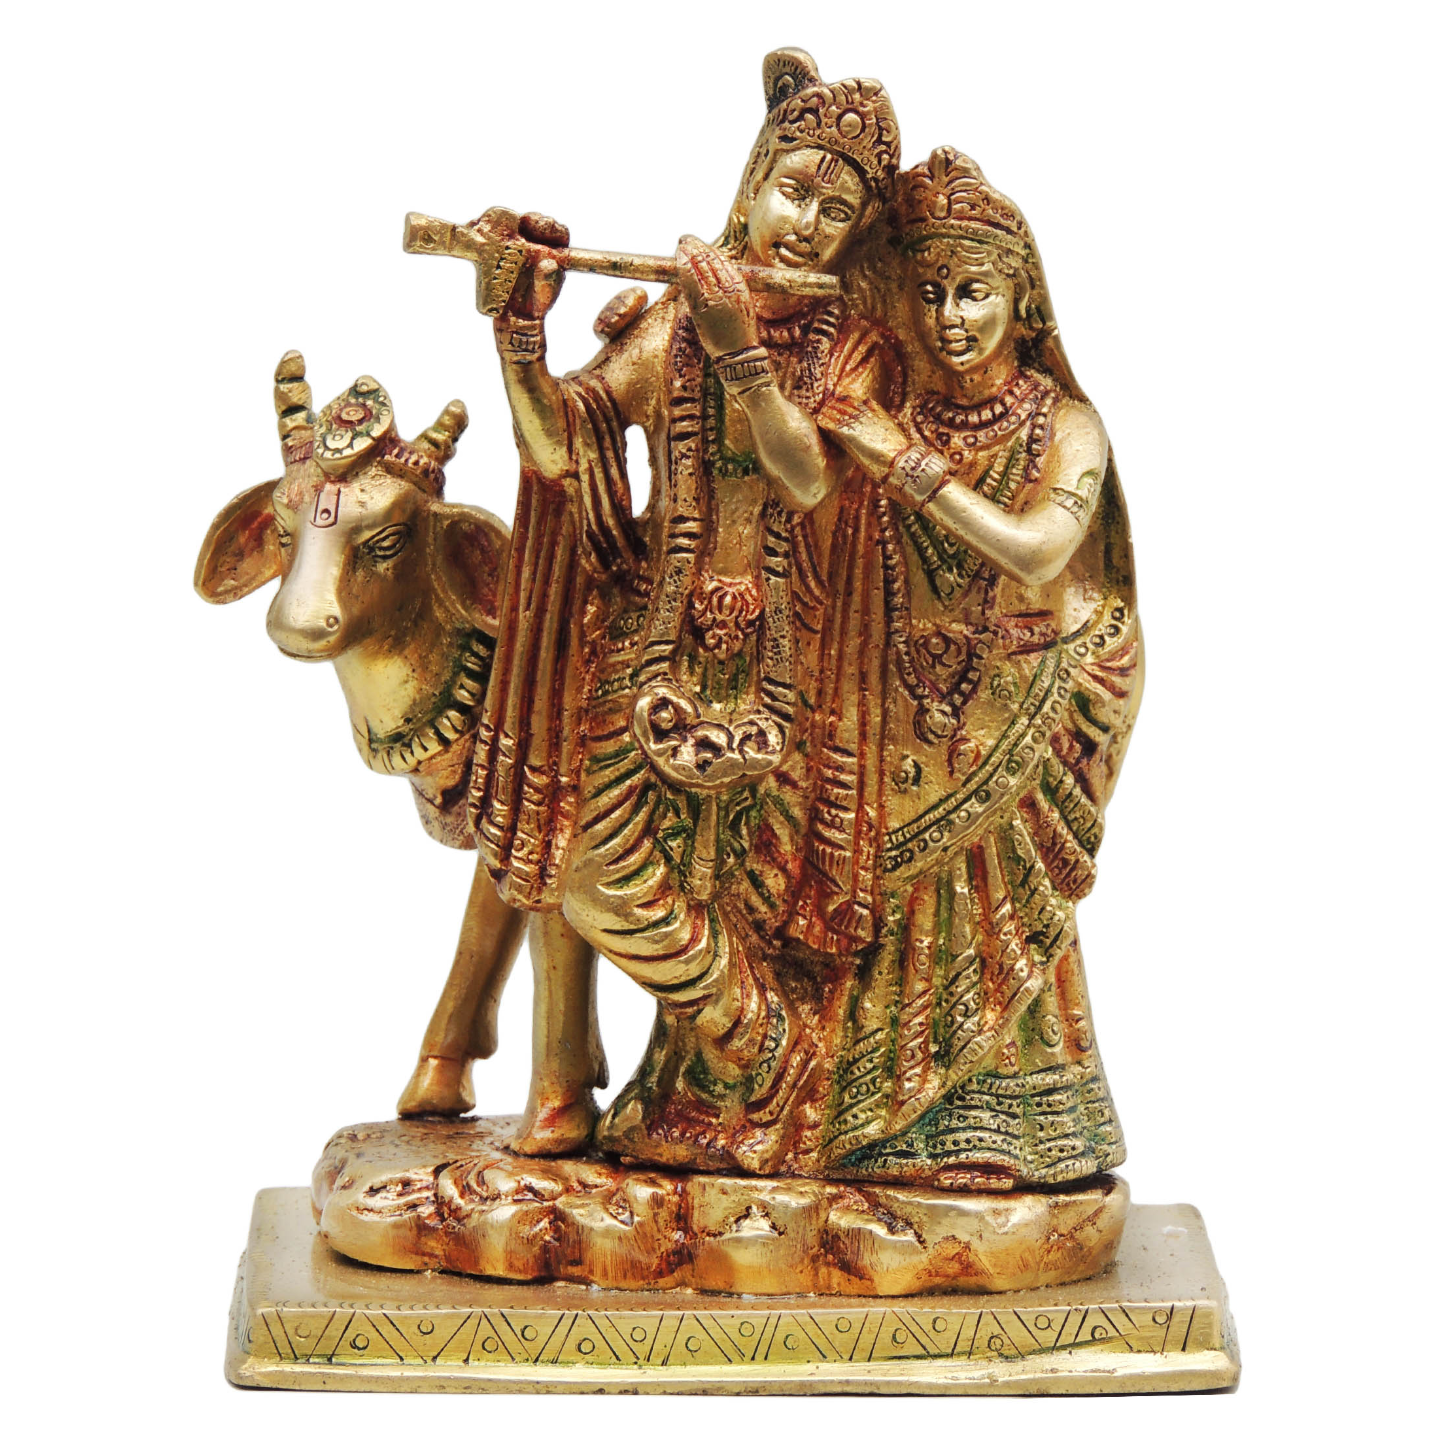 Brass Radha Krishna with Cow Staute Idol Murti in Multicolour lacquer finish - 5.5*4*7.5Inch  (BS400)